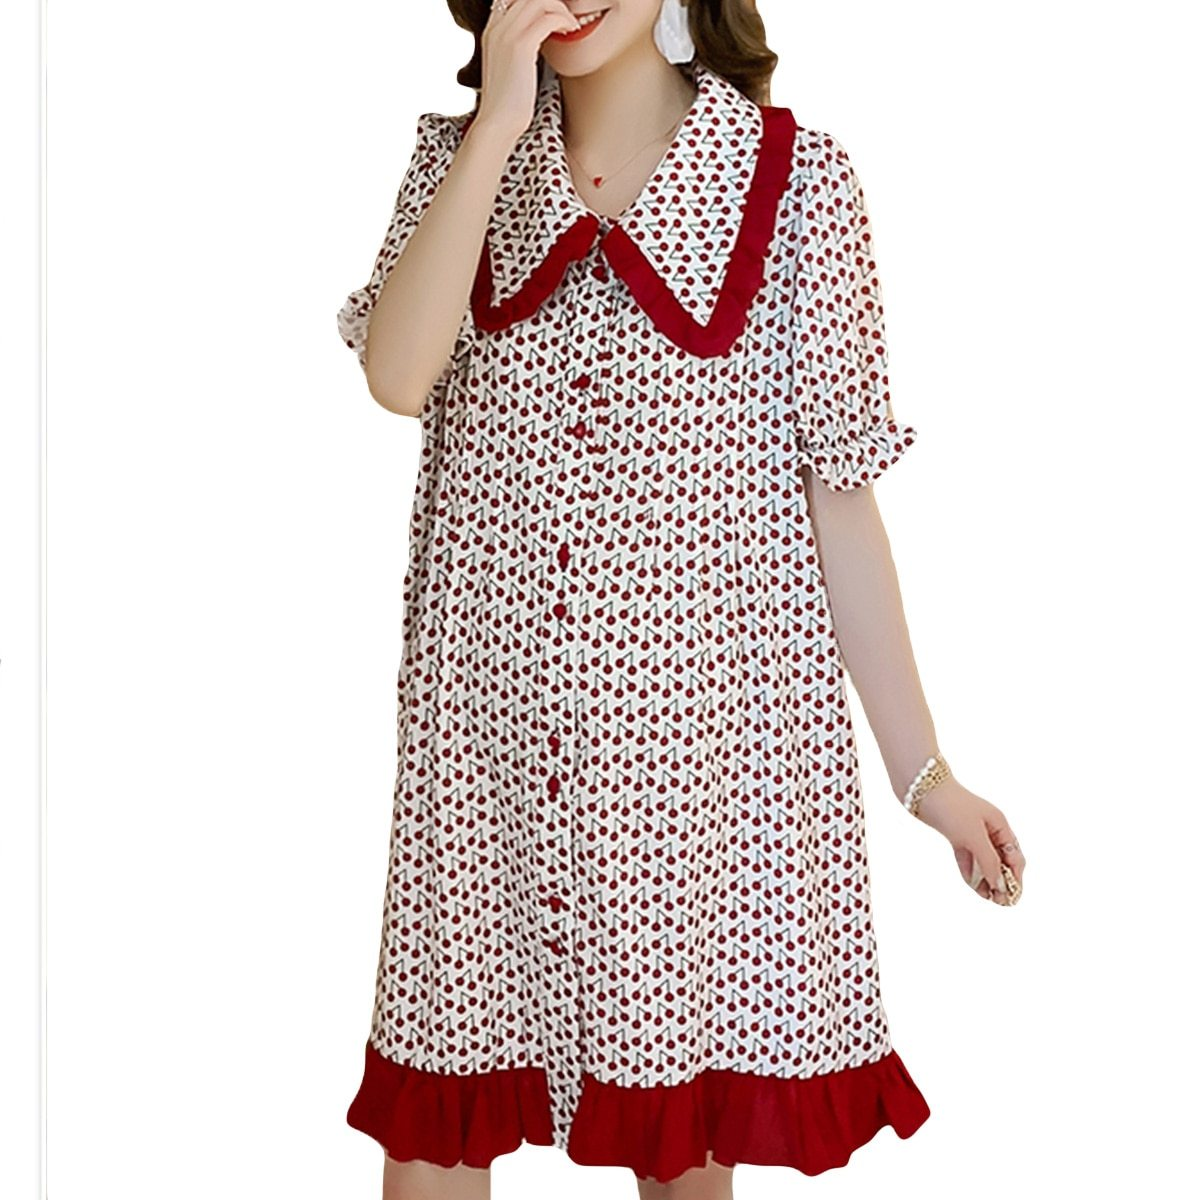 Maternity Dress Cherry Printed Turn Down Collar Short Sleeve Loose Dress